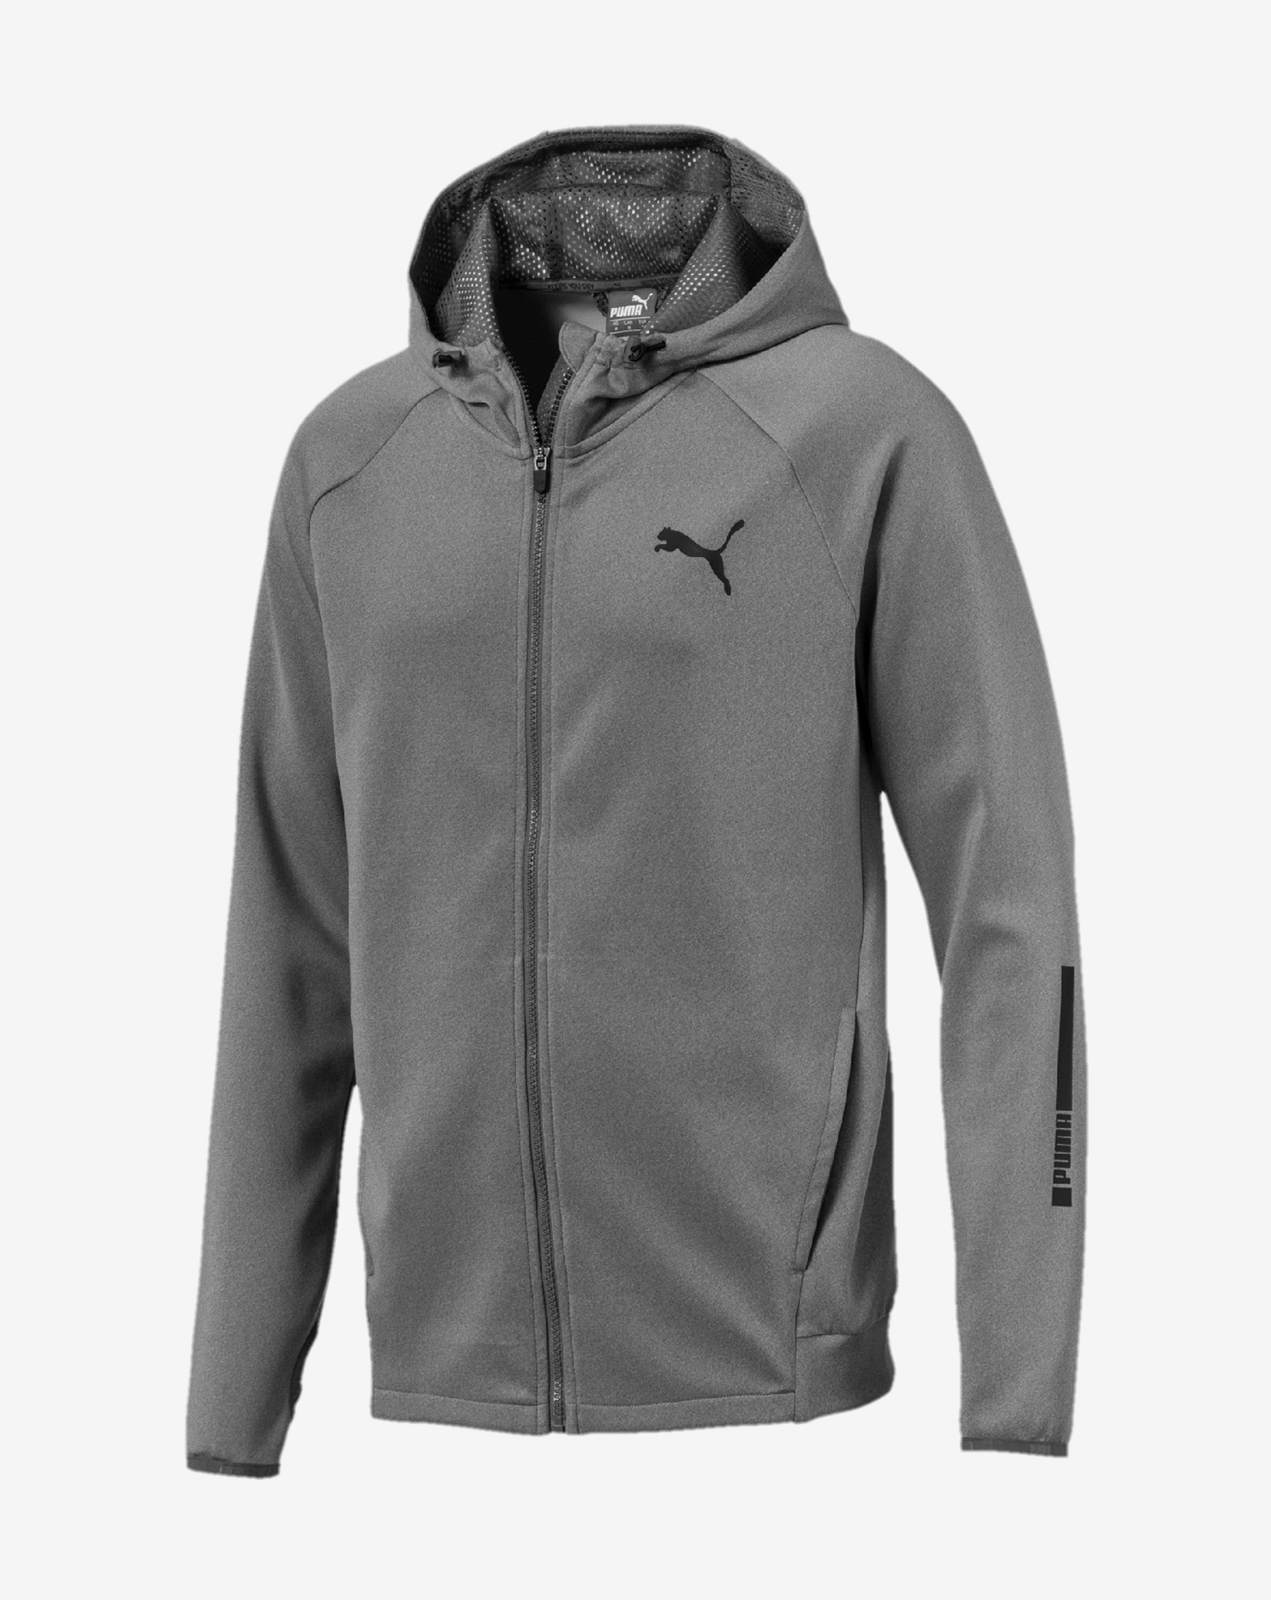 Tec Sports FZ Hoody Medium Gray Heather